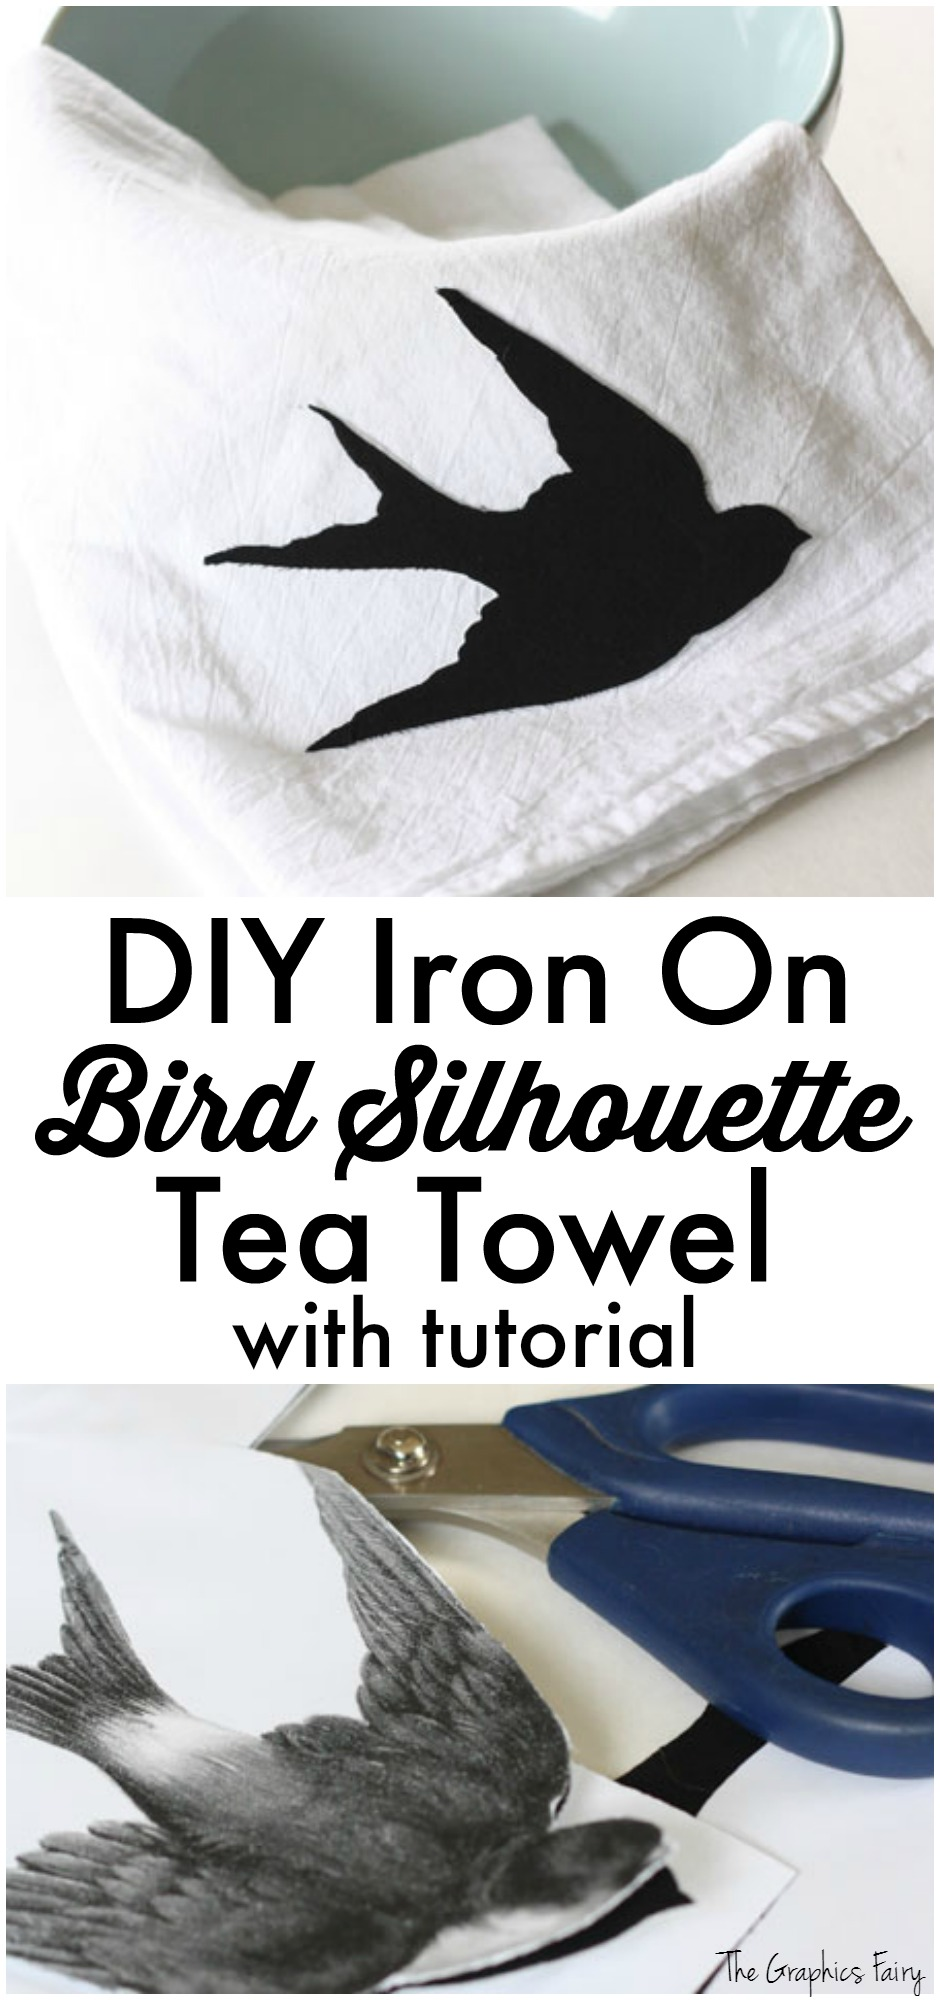 DIY Iron On Bird Silhouette Tea Towel with Tutorial - The Graphics Fairy